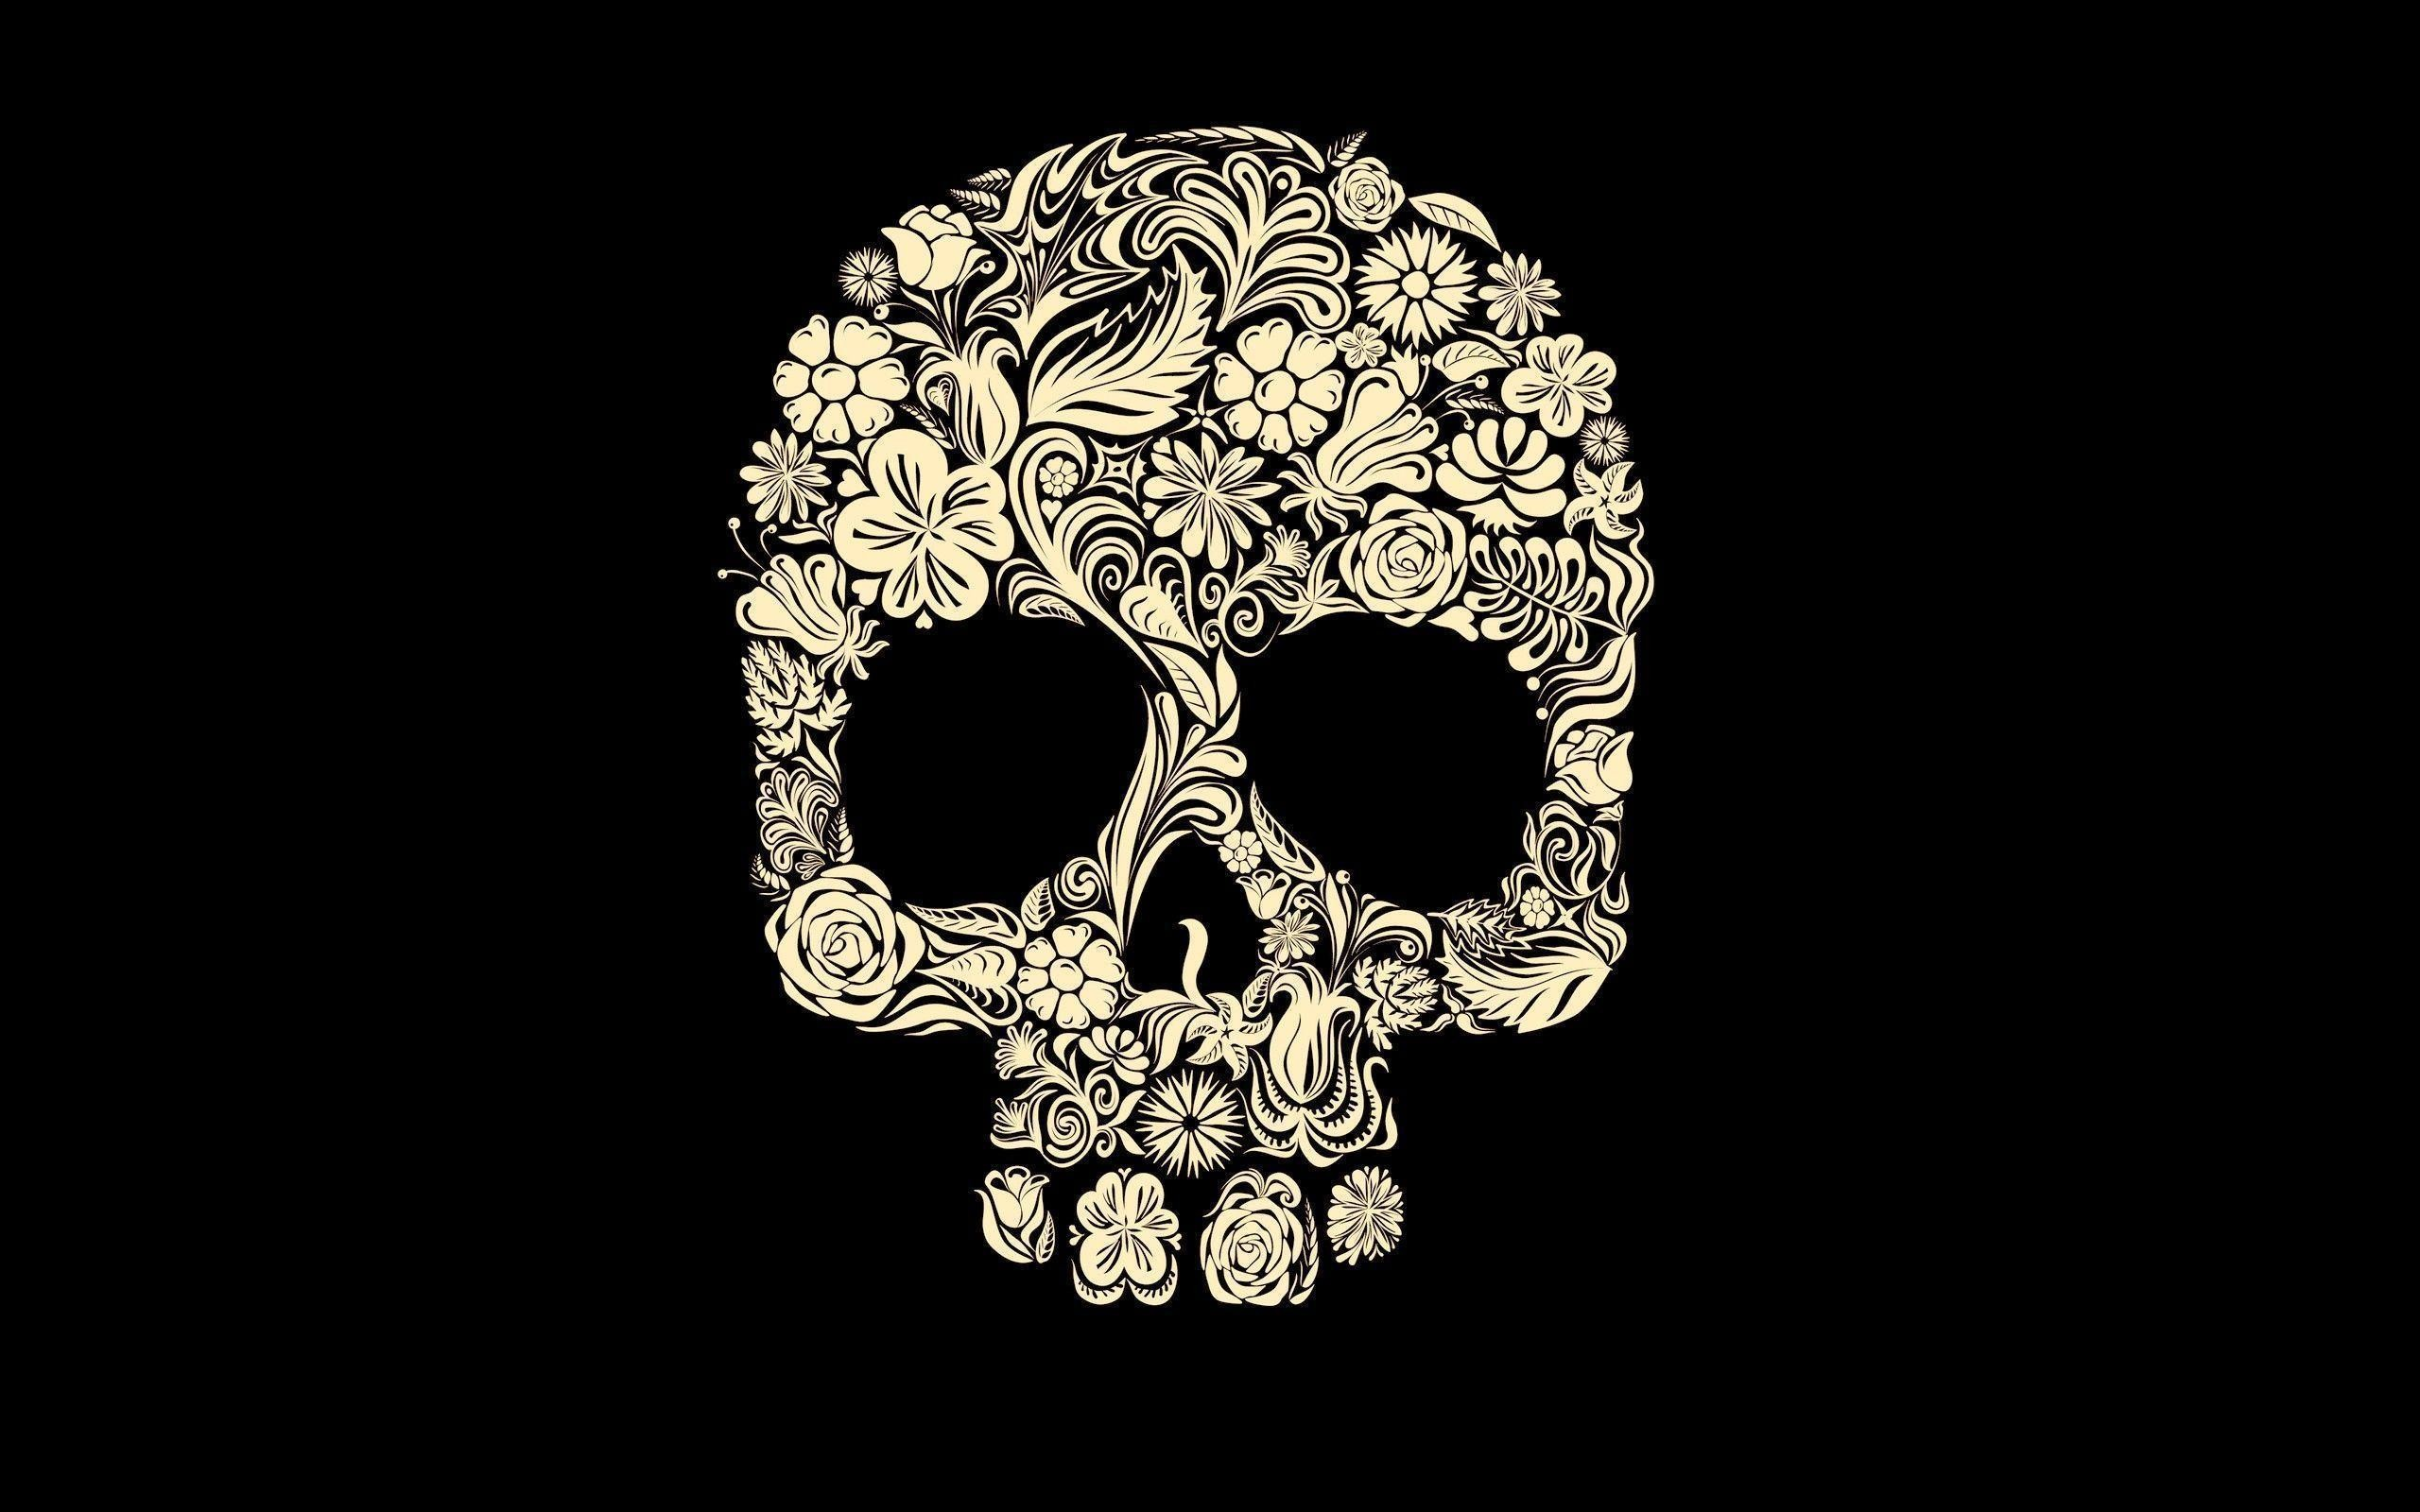 Skull wallpapers for android skull wallpapers voltagebd Image collections